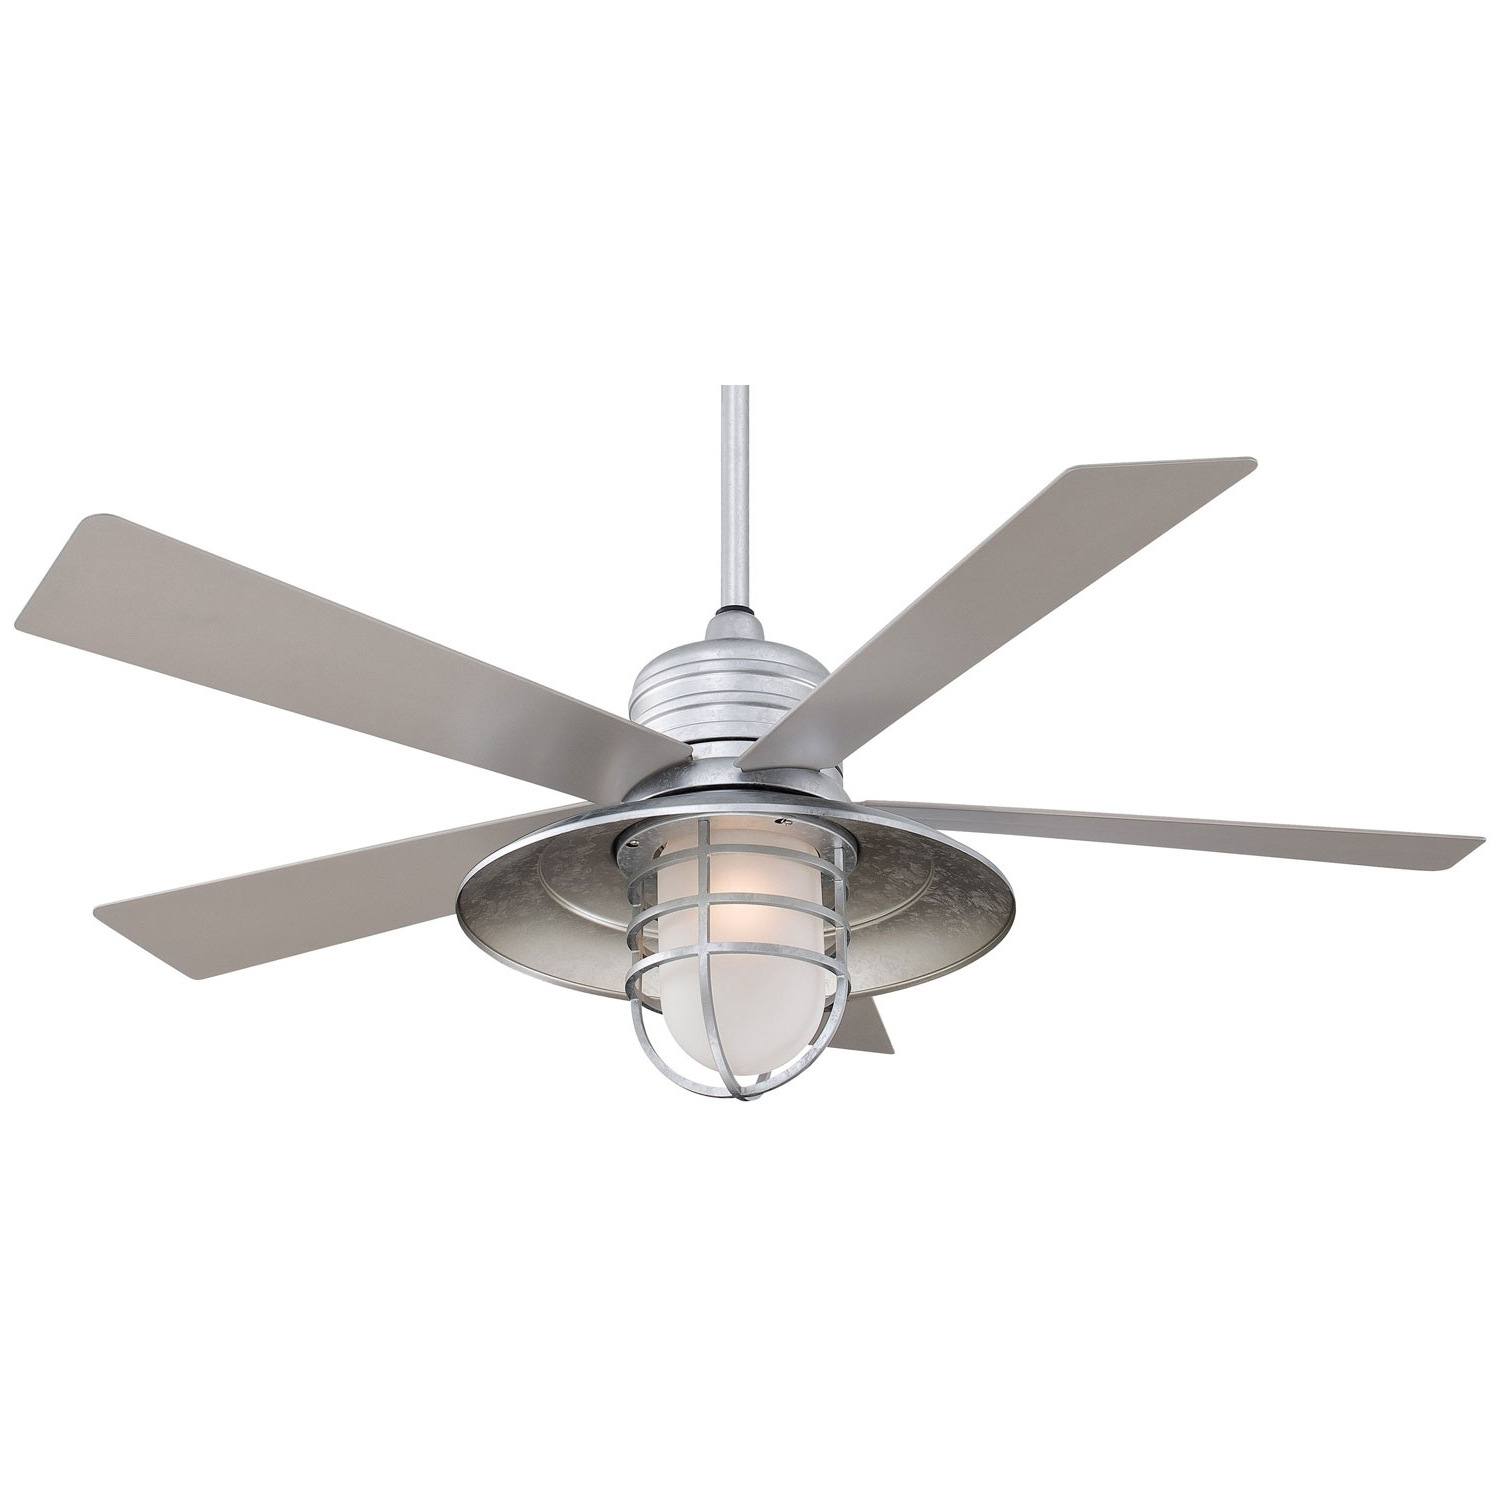 Most Recently Released Outdoor Ceiling Fans With Galvanized Blades Regarding Minka Aire Rainman Galvanized 54 Inch Blade Indoor/outdoor Ceiling (View 2 of 20)